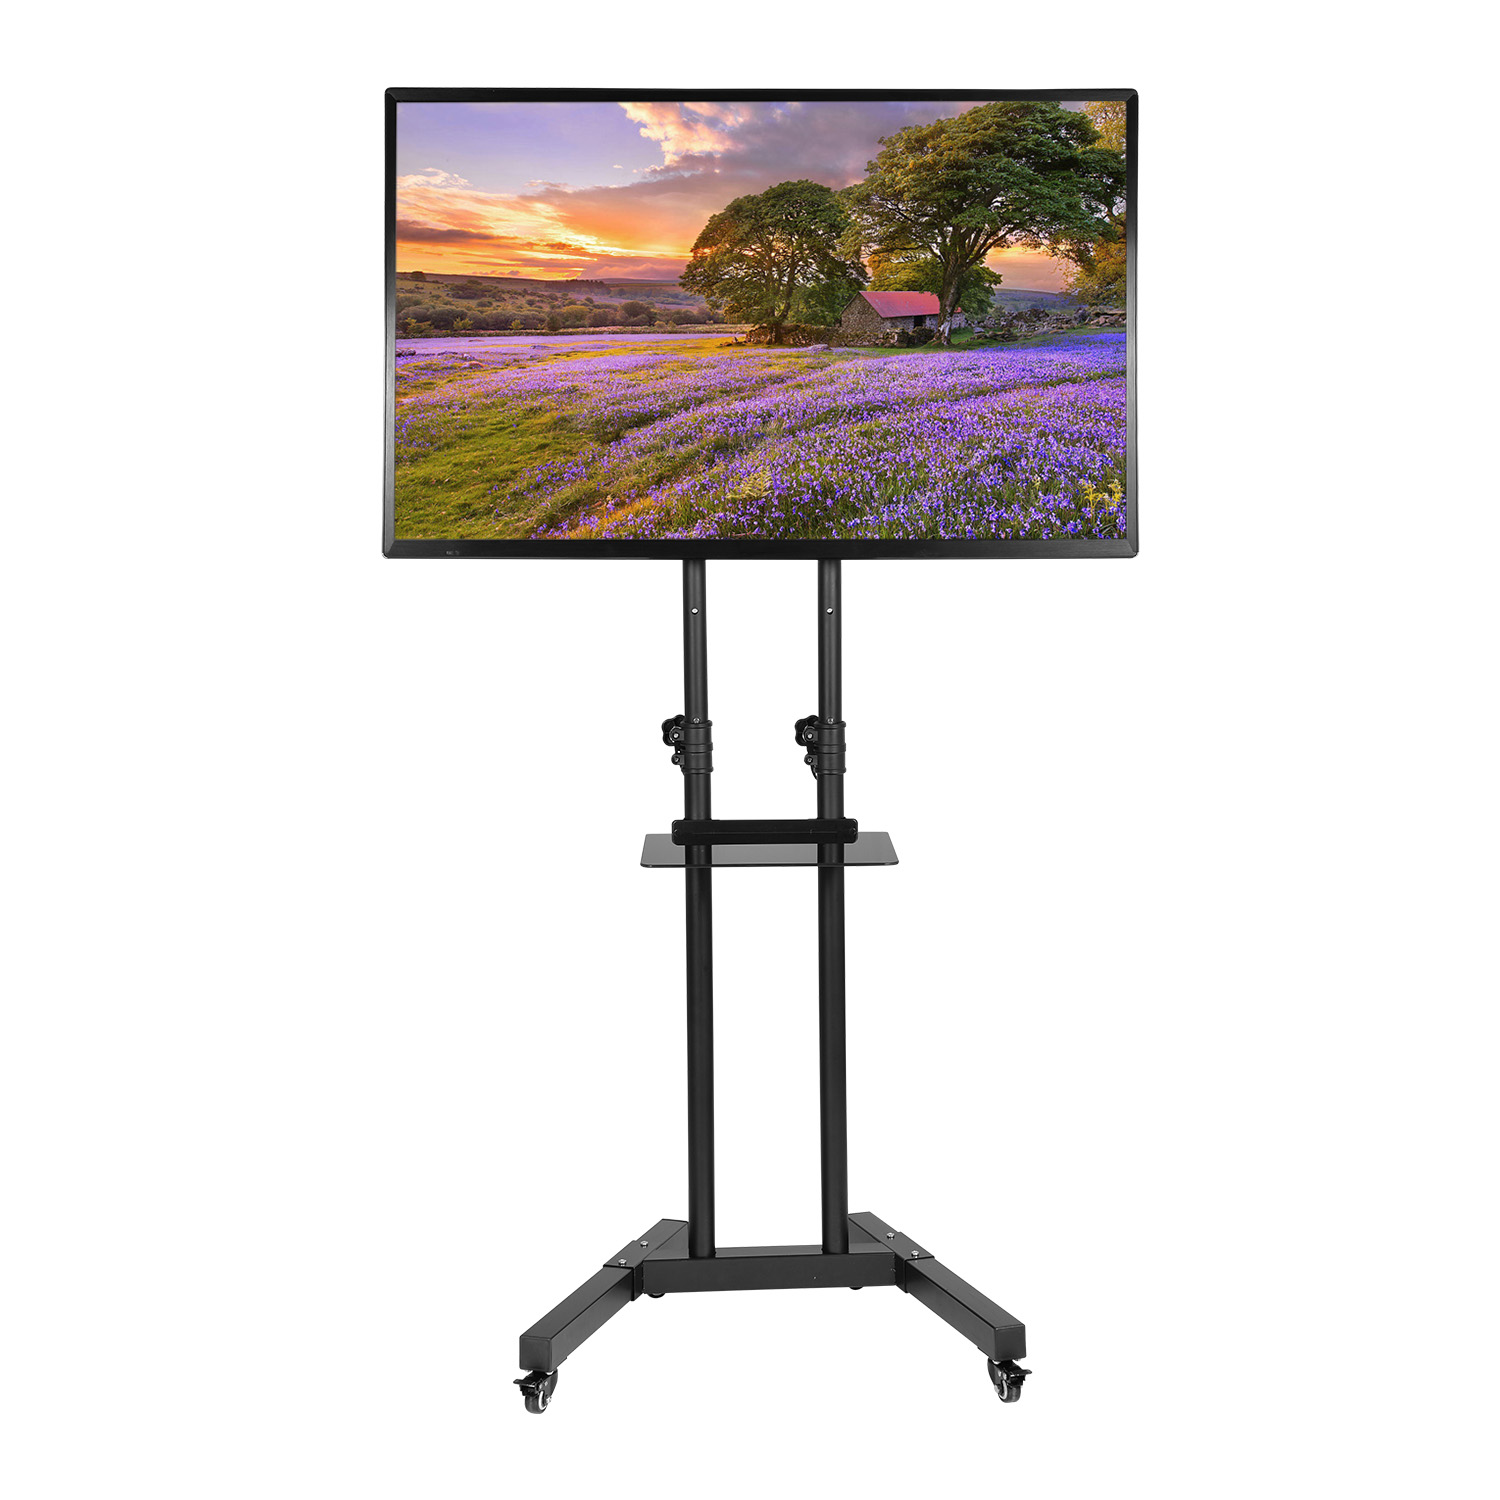 Mllieroo Universal 32 65 Inch Rolling Mobile Tv Stand Flat Screen Tv